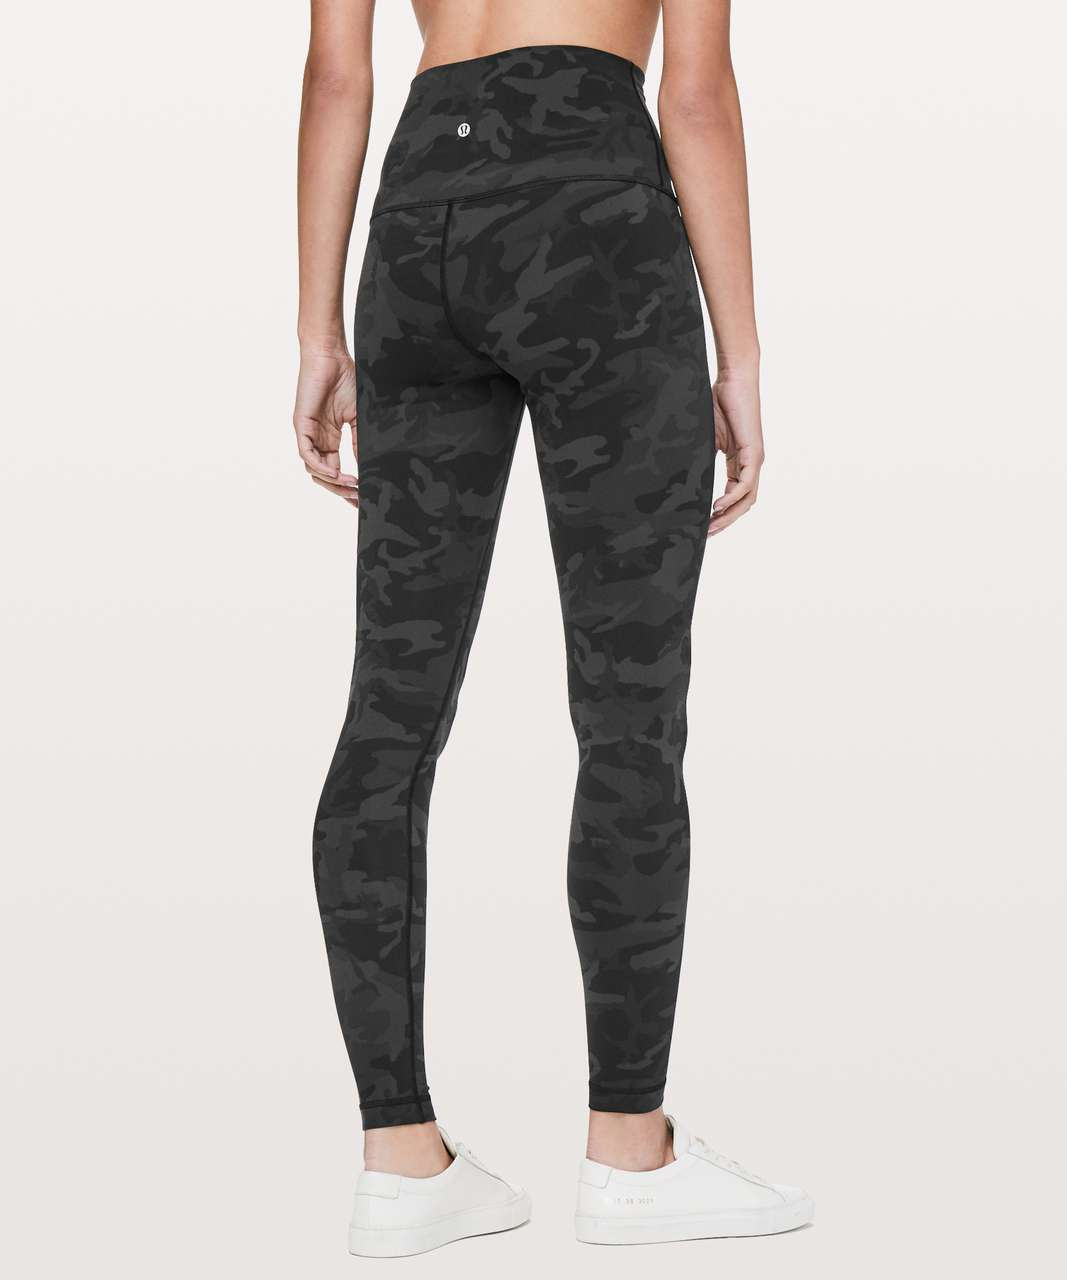 "Lululemon Wunder Under Super Hi-Rise Tight *Full-On Luon 28"" - Incognito Camo Multi Grey"